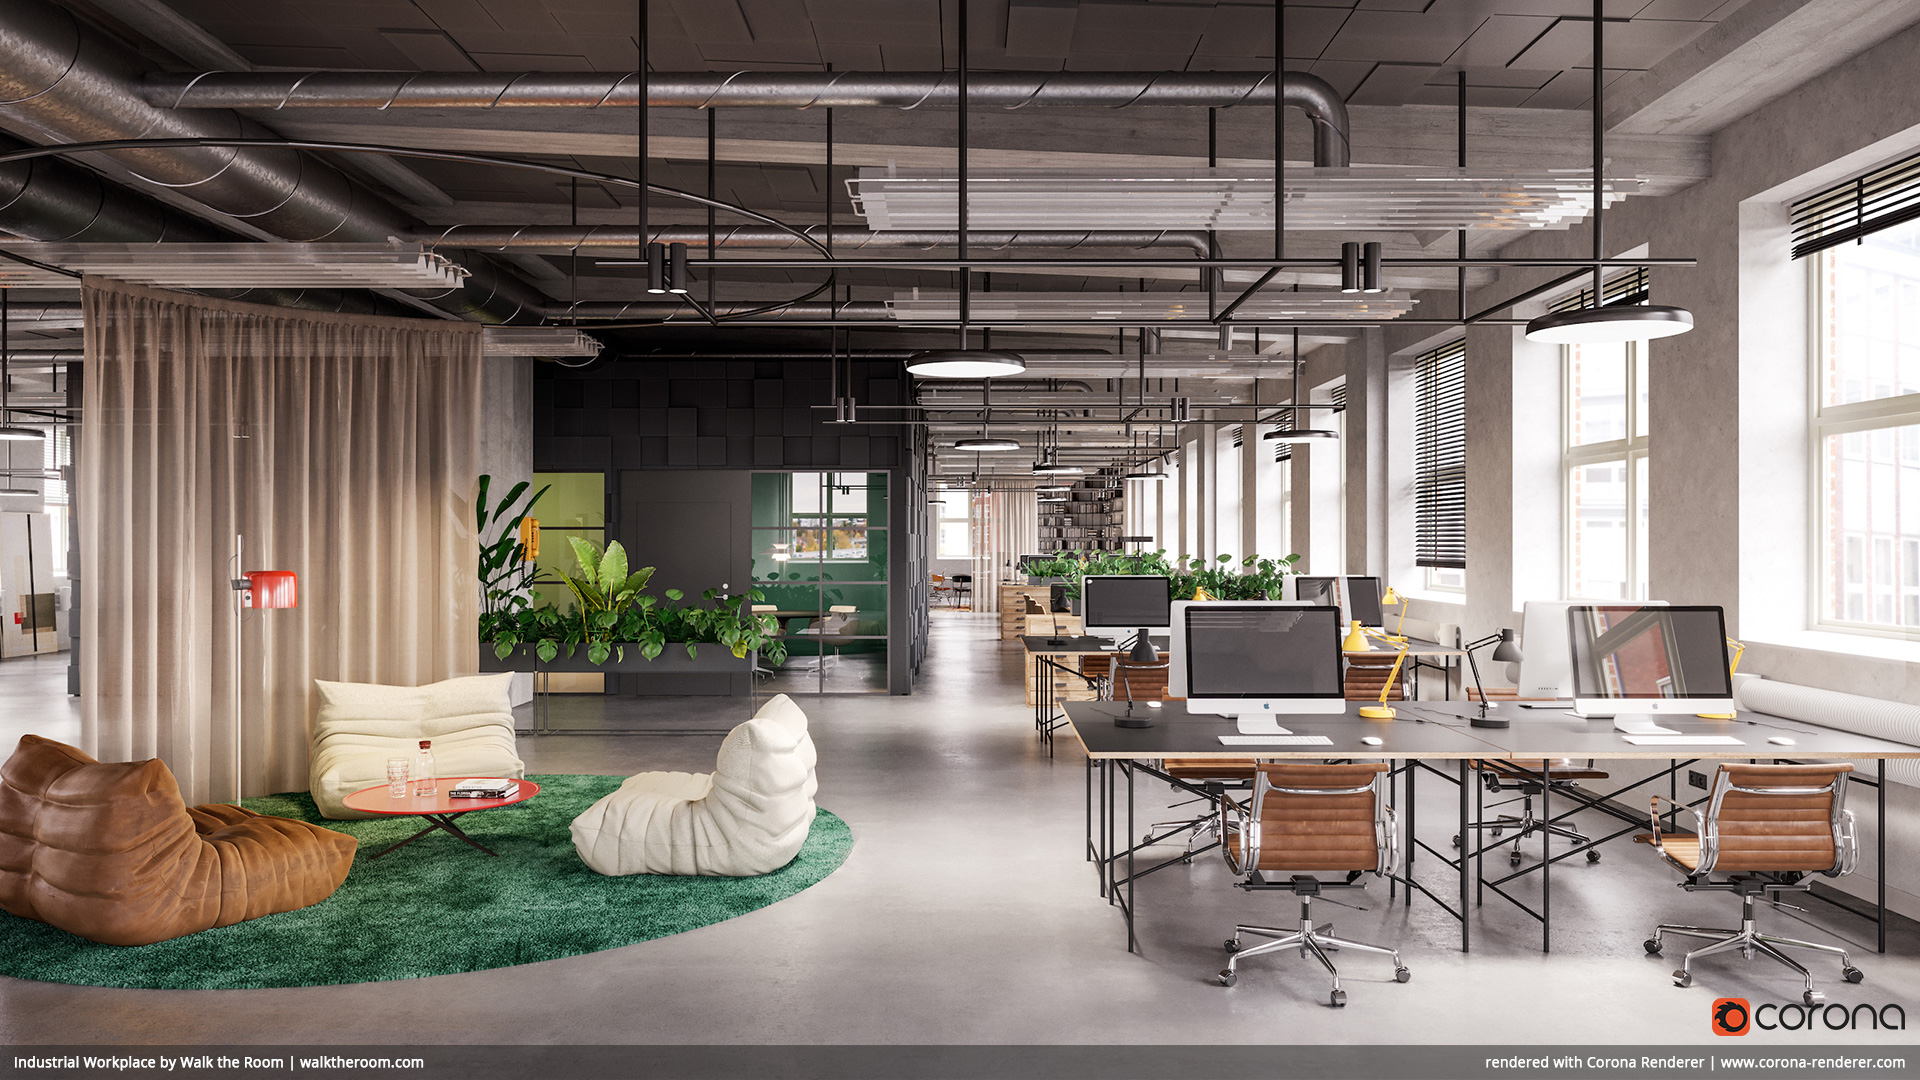 Industrial Workplace by Walk the Room